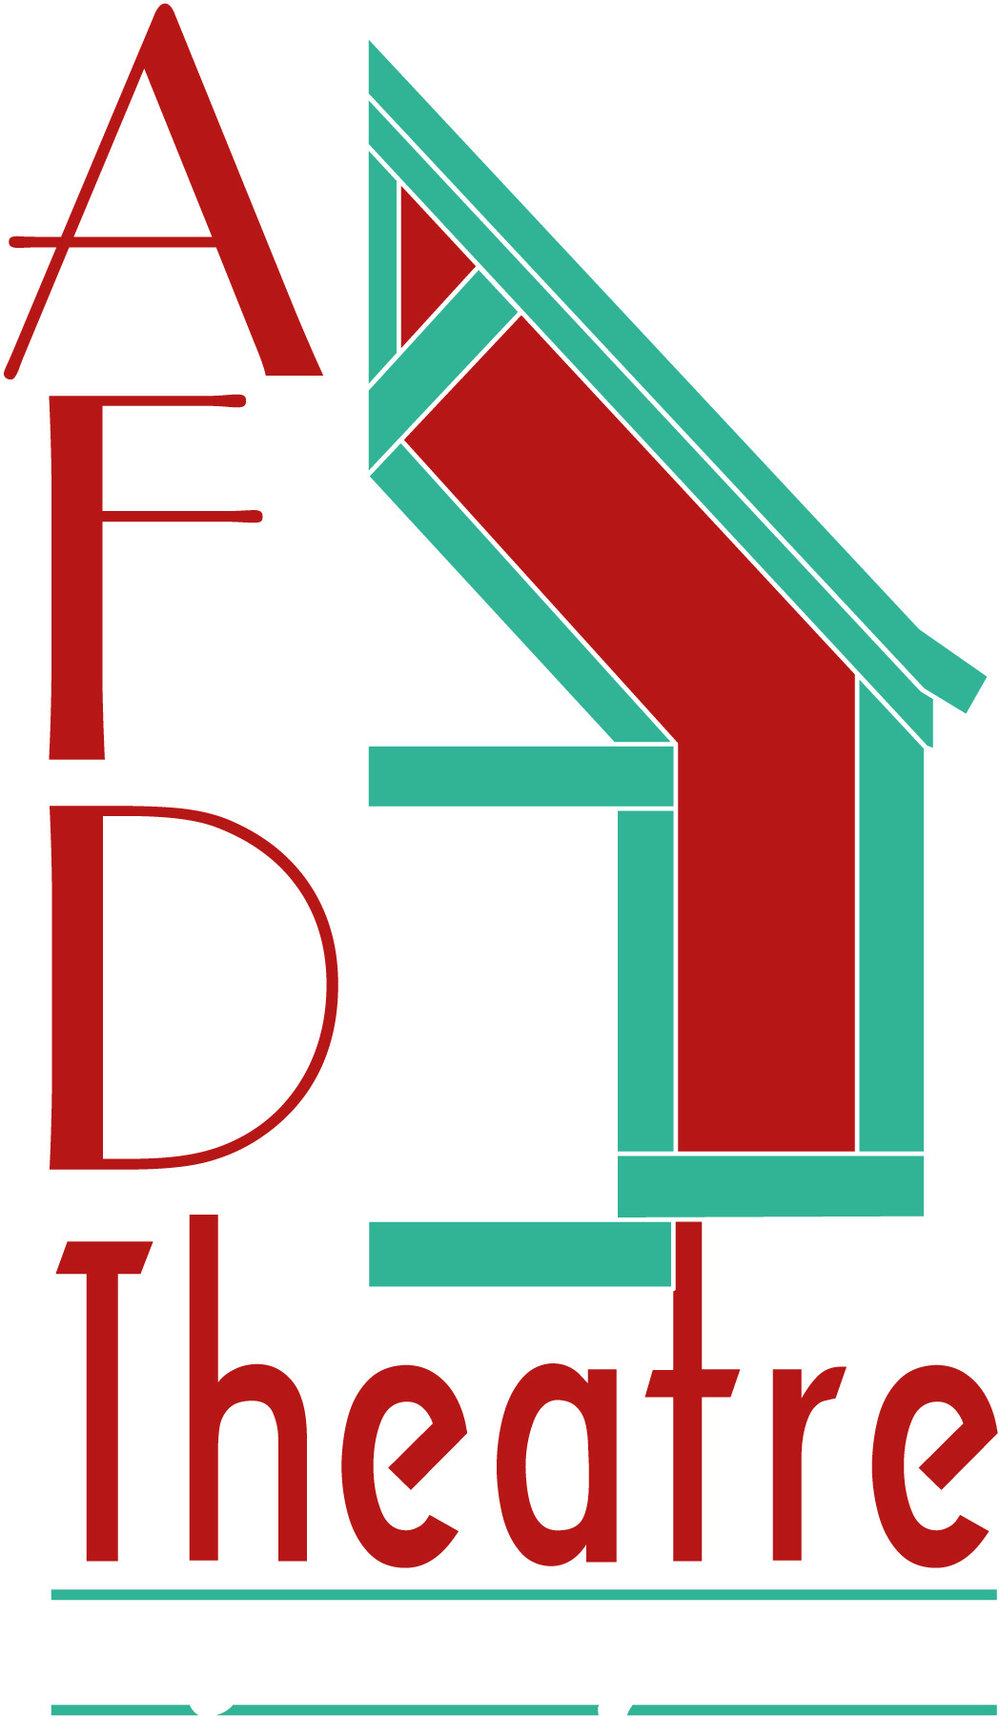 AFD logo color 6 in.jpg